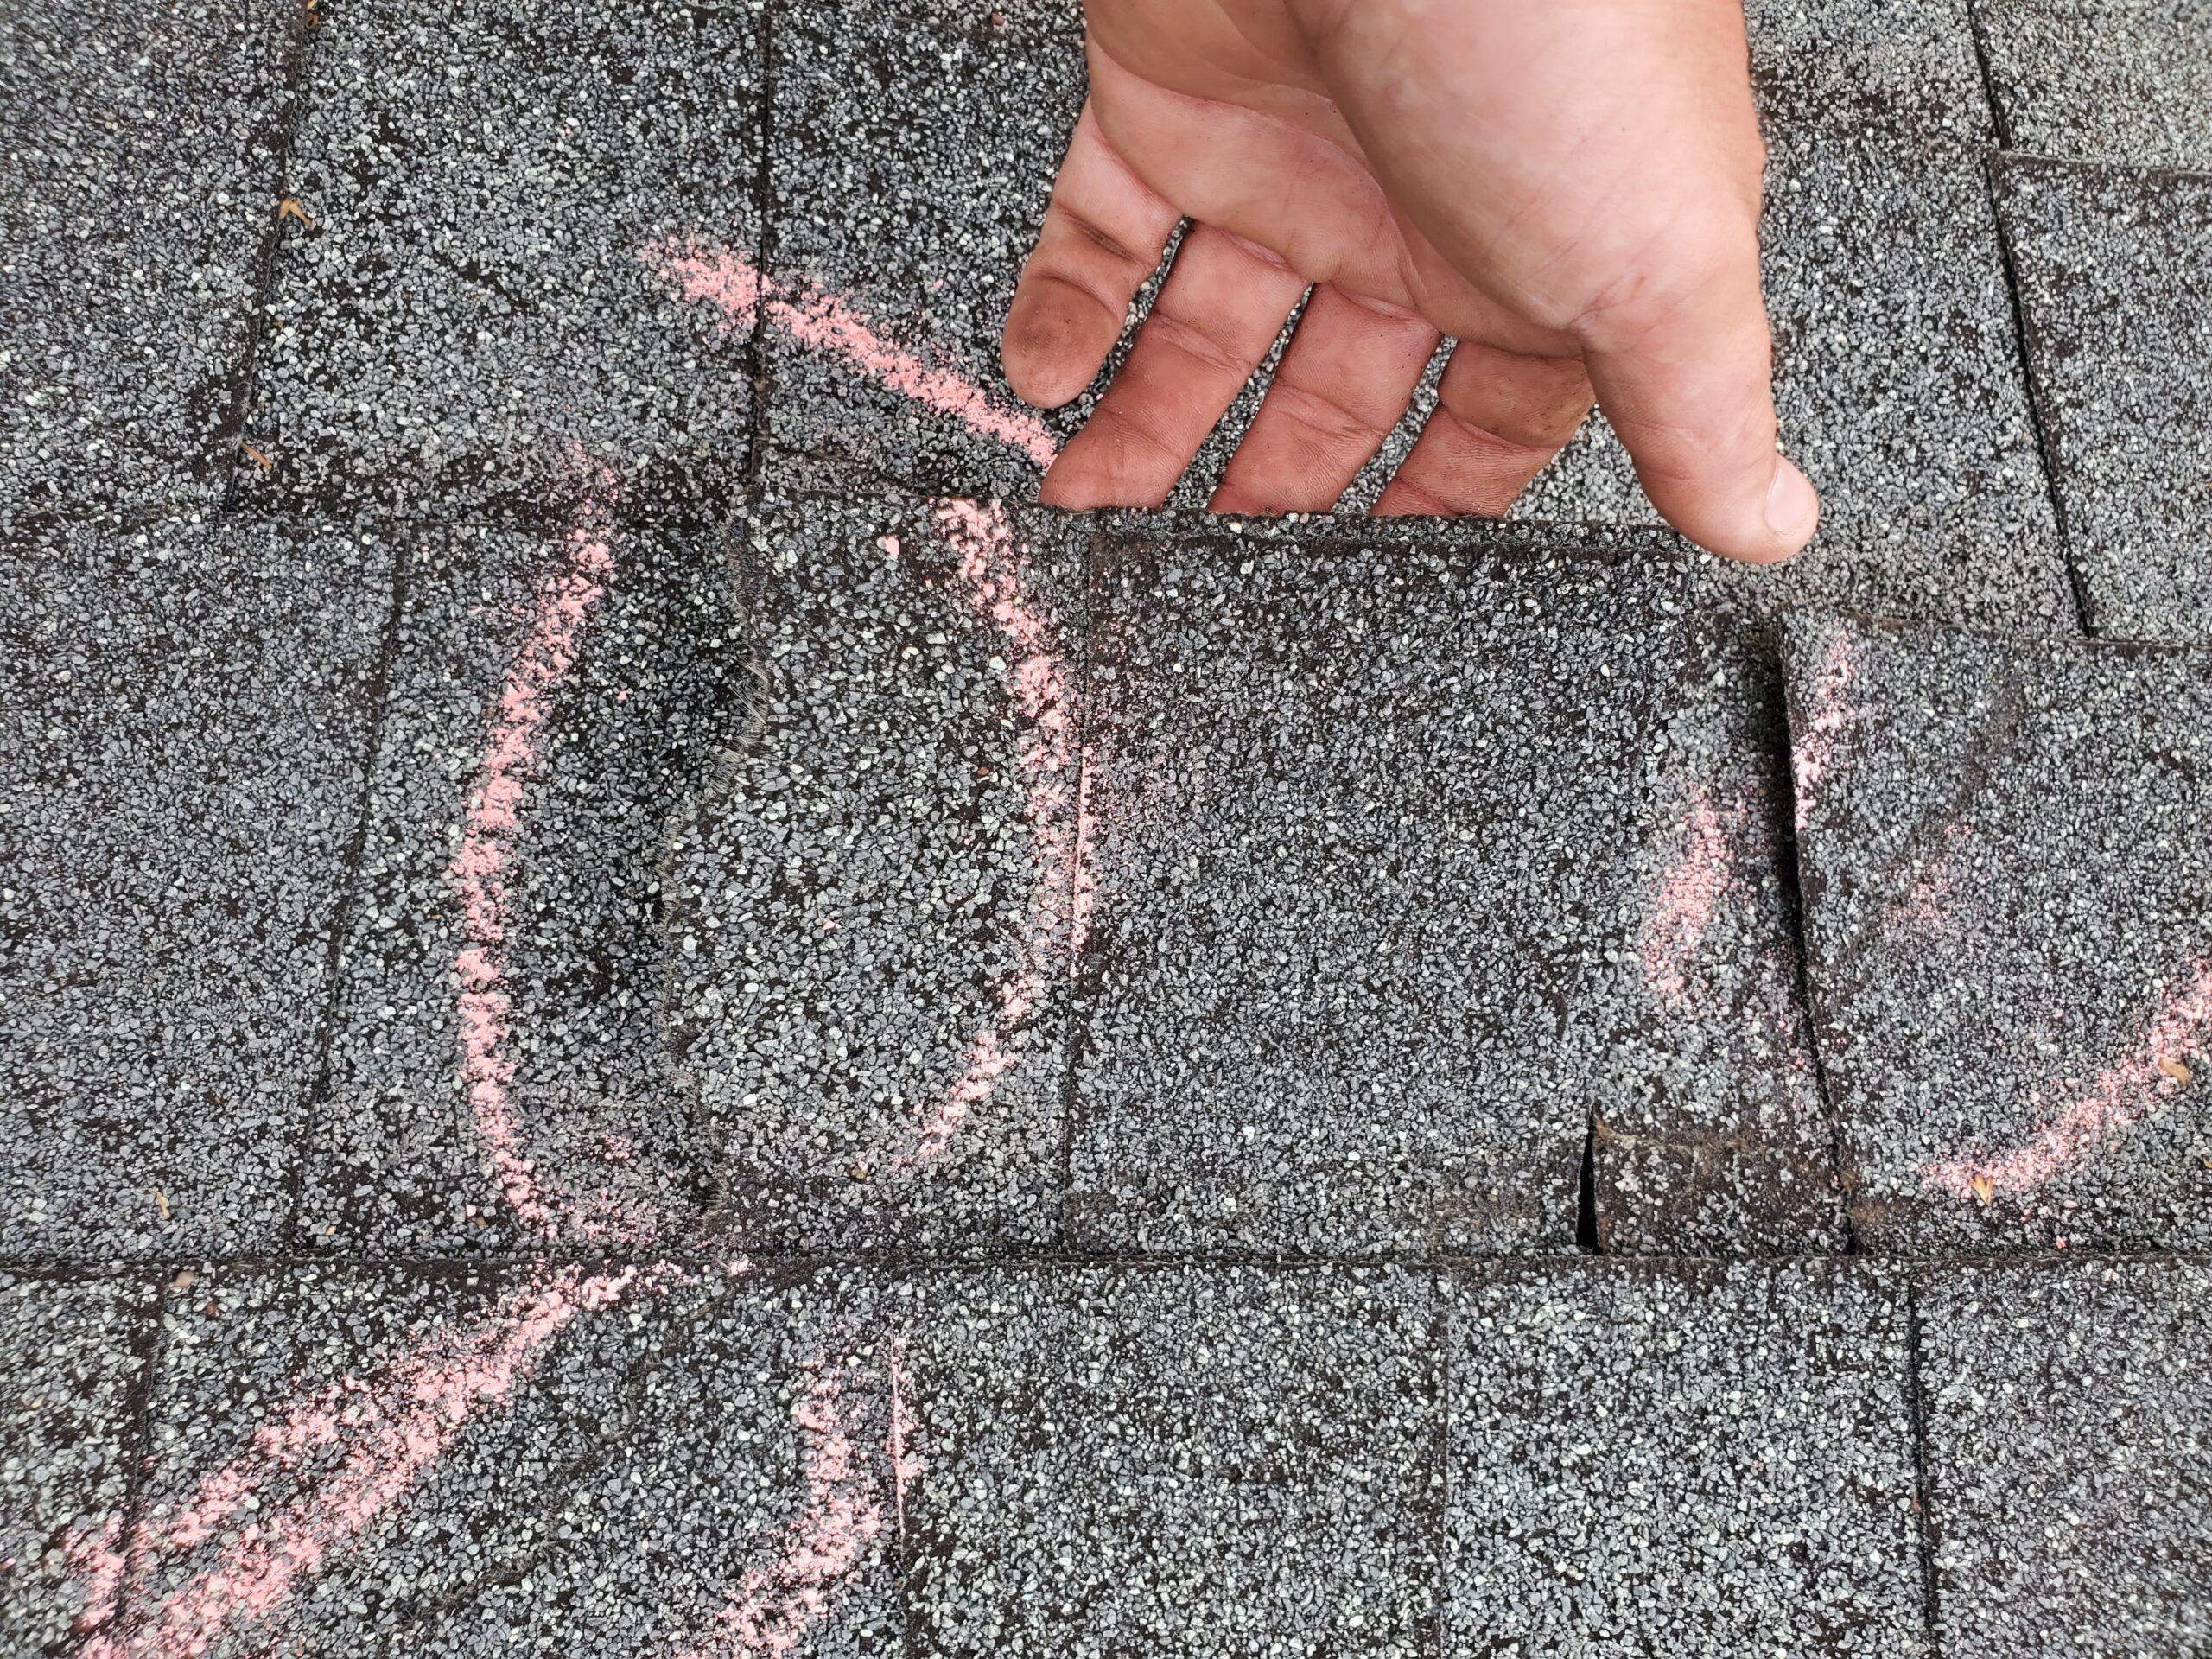 these chalk marks shown in the picture are there to show an insurance adjuster shingles broken by storm damages